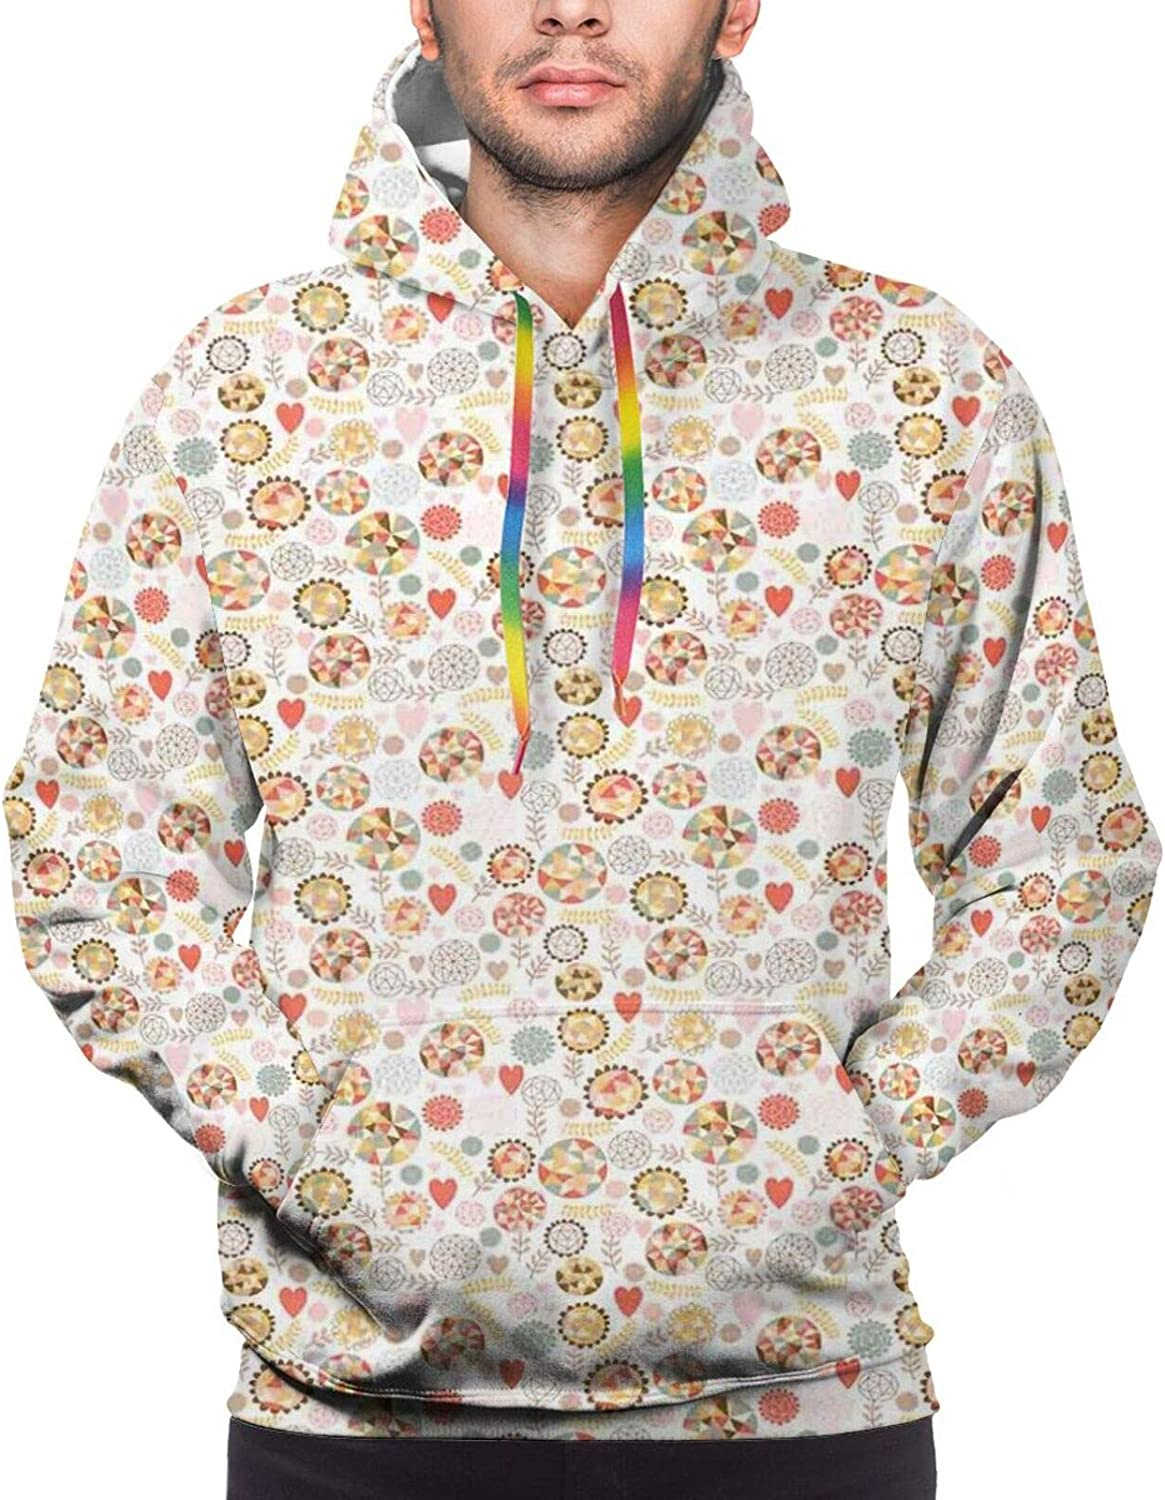 Men's Hoodies Sweatshirts,Modern Pattern with Geometric Flowers and Leafy Branches with Pastel Color Hearts